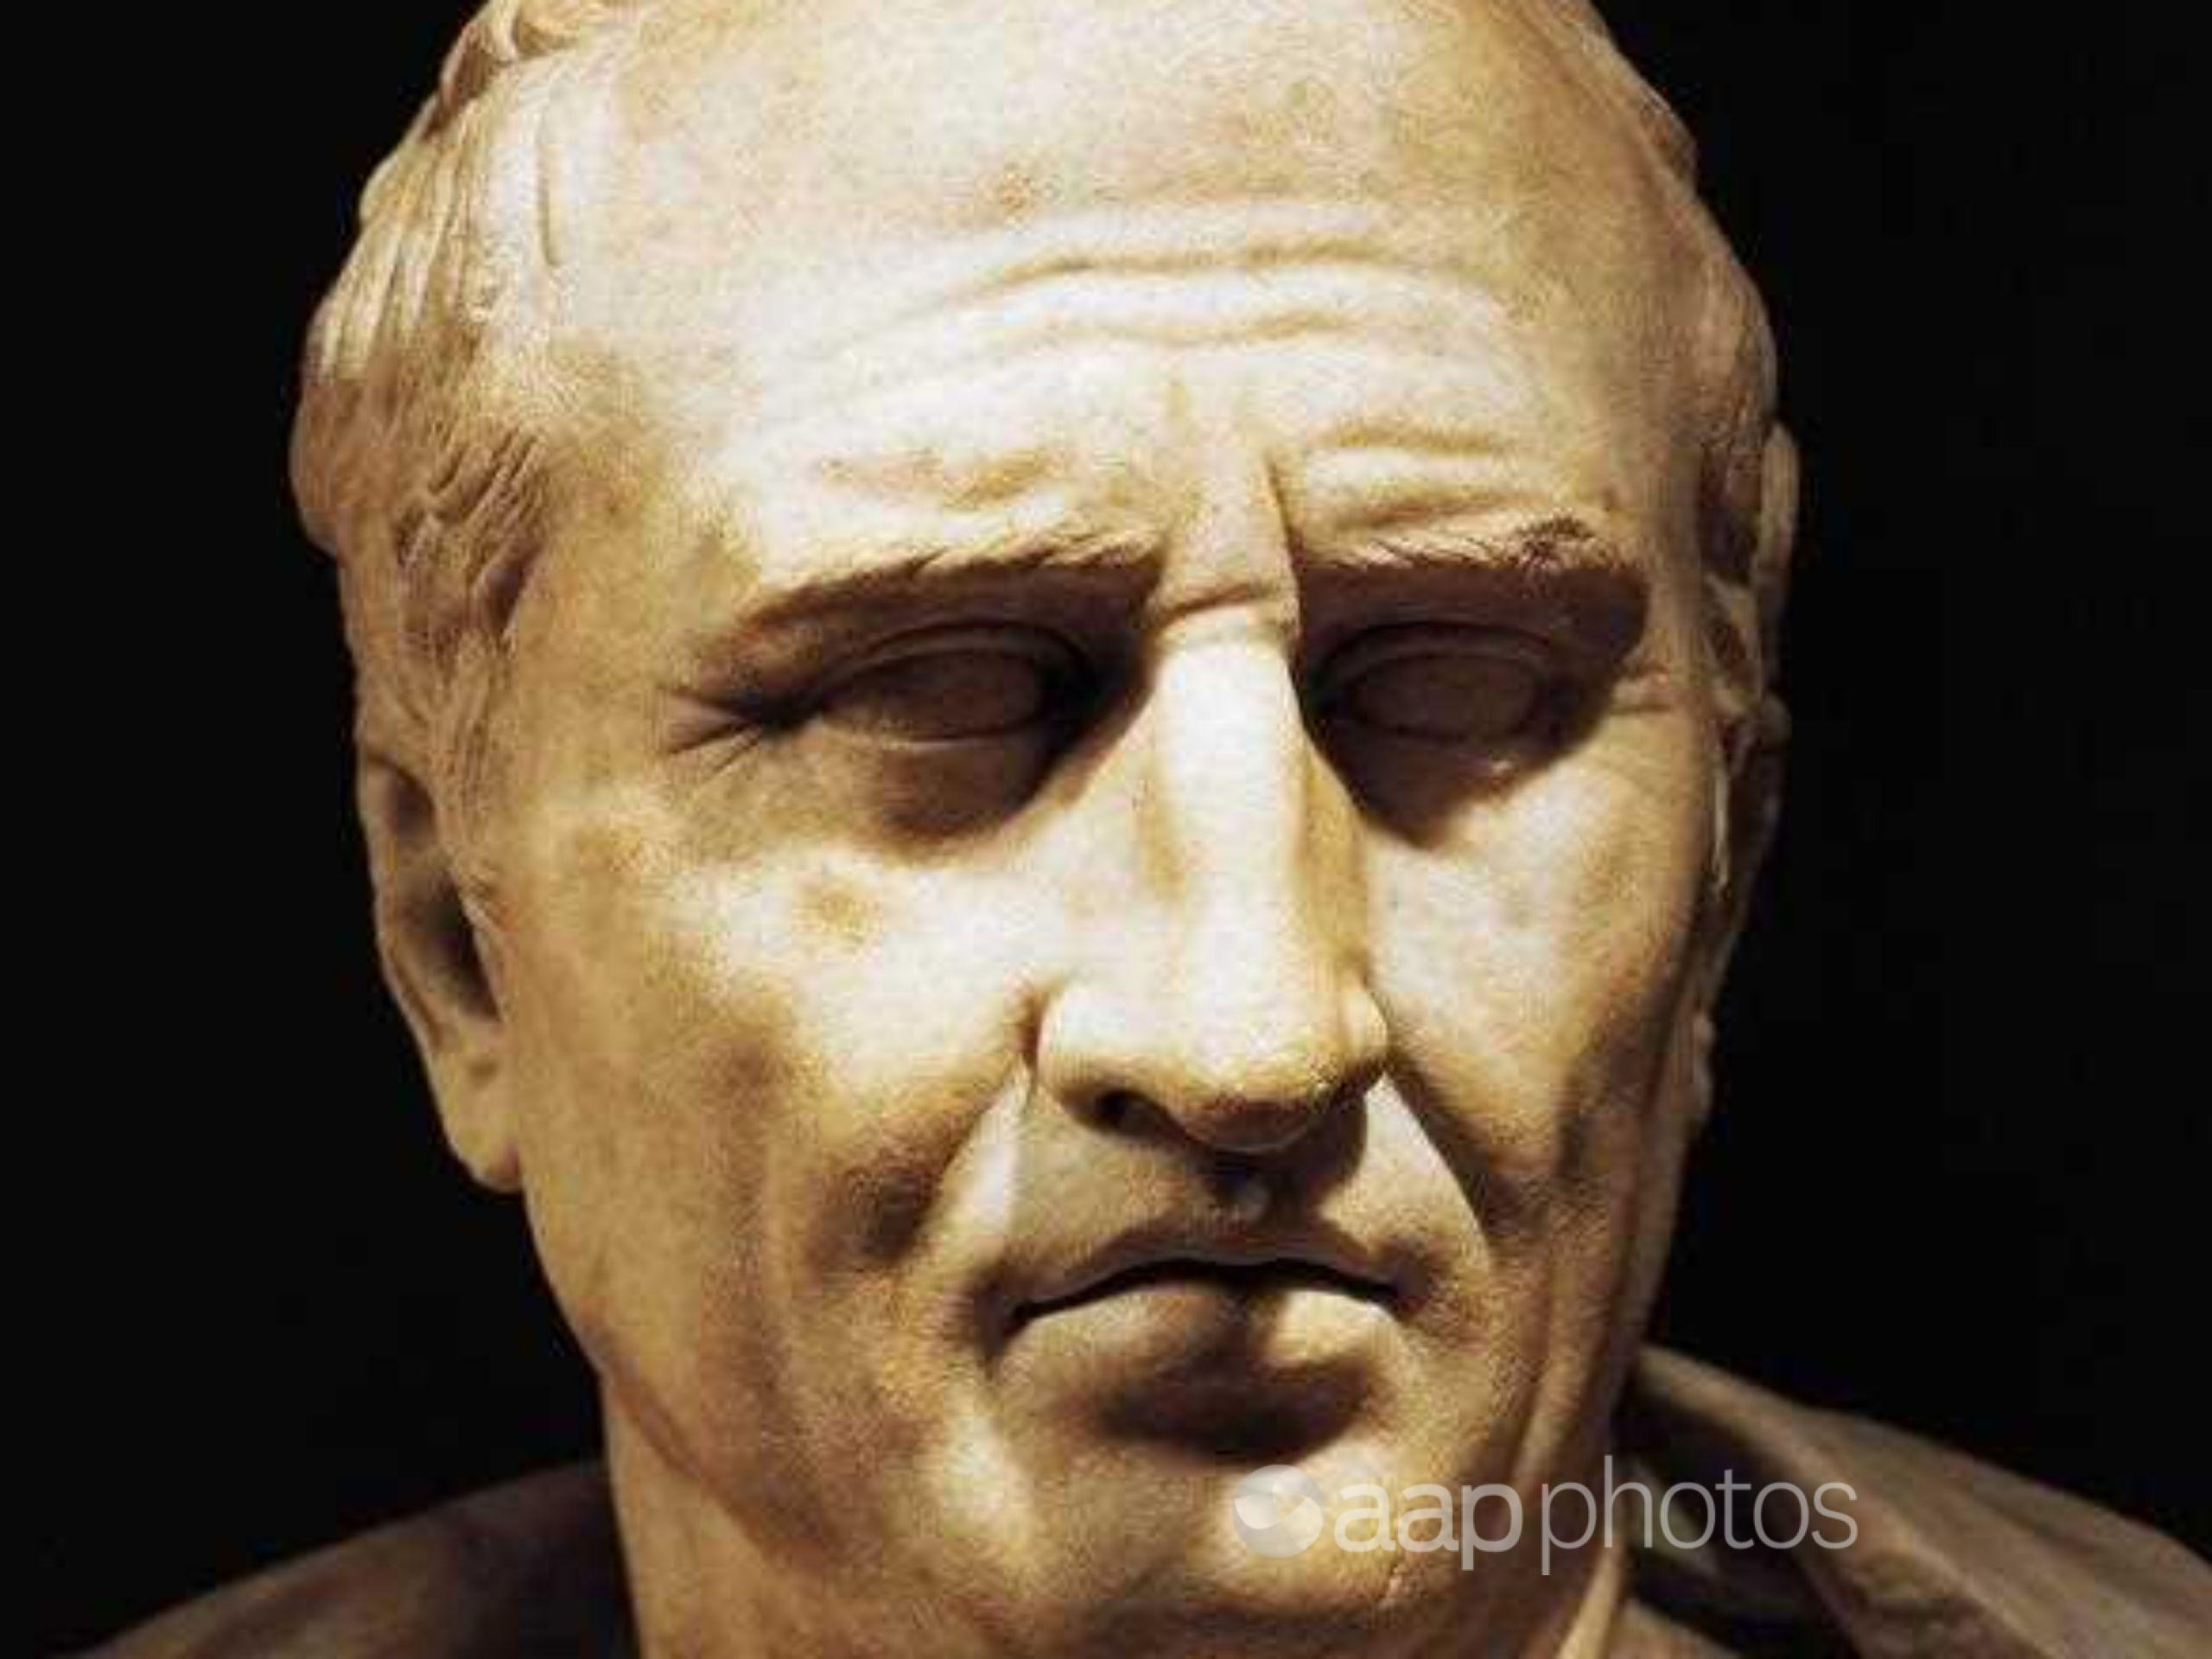 The marble head of Cicero